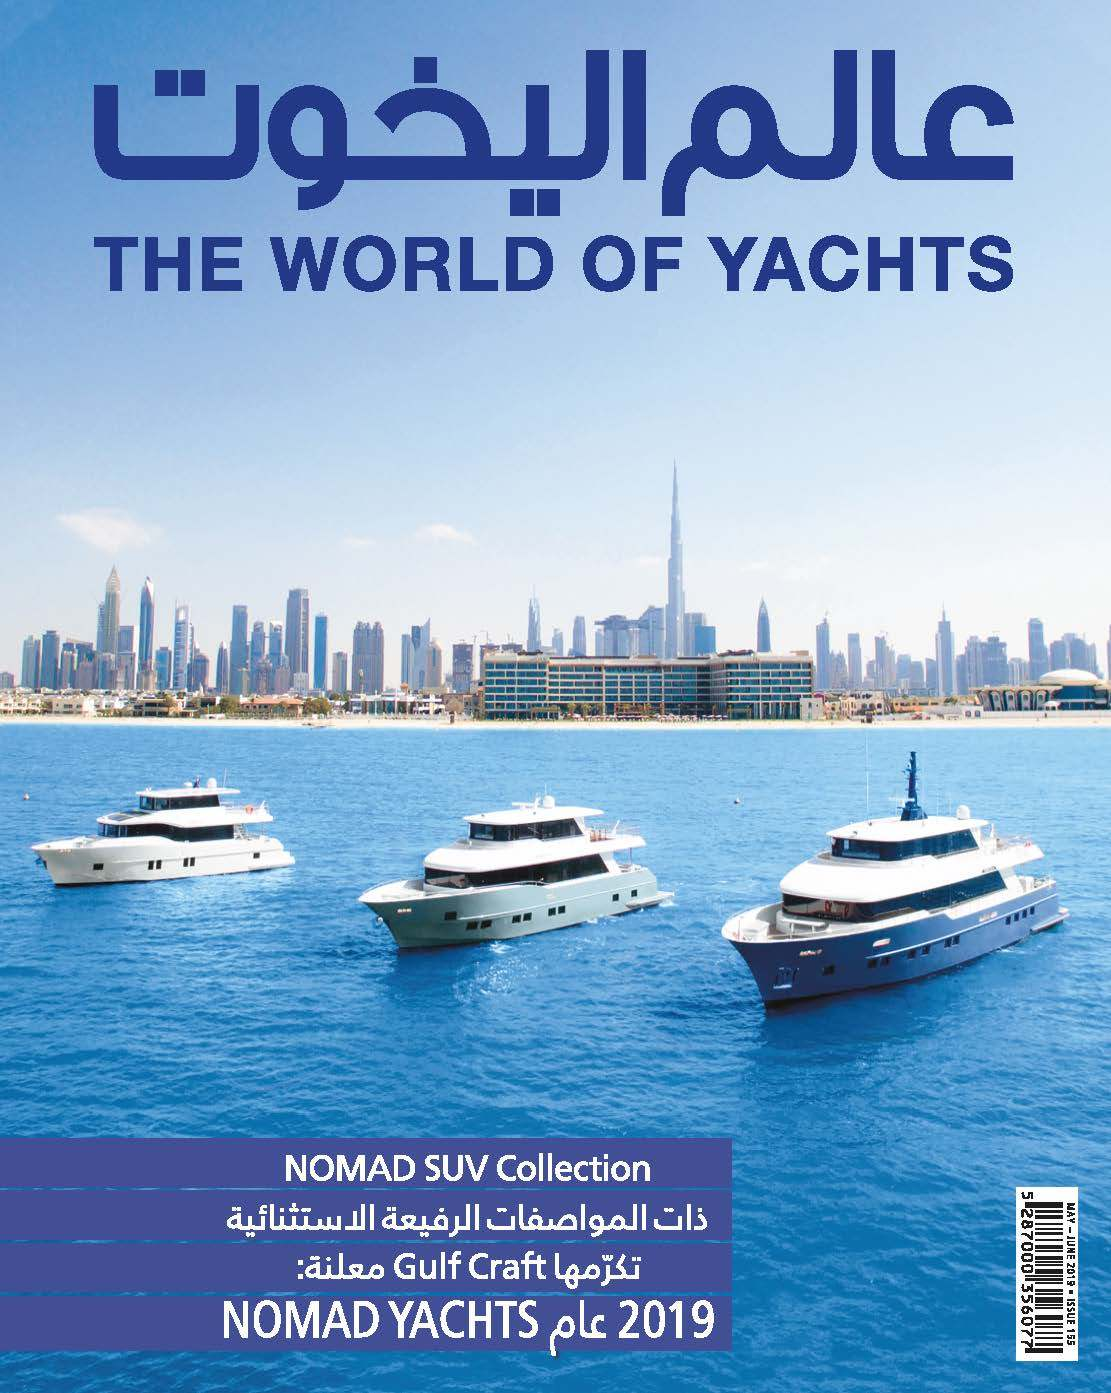 World-of-Yachts-Foglizzo.jpg